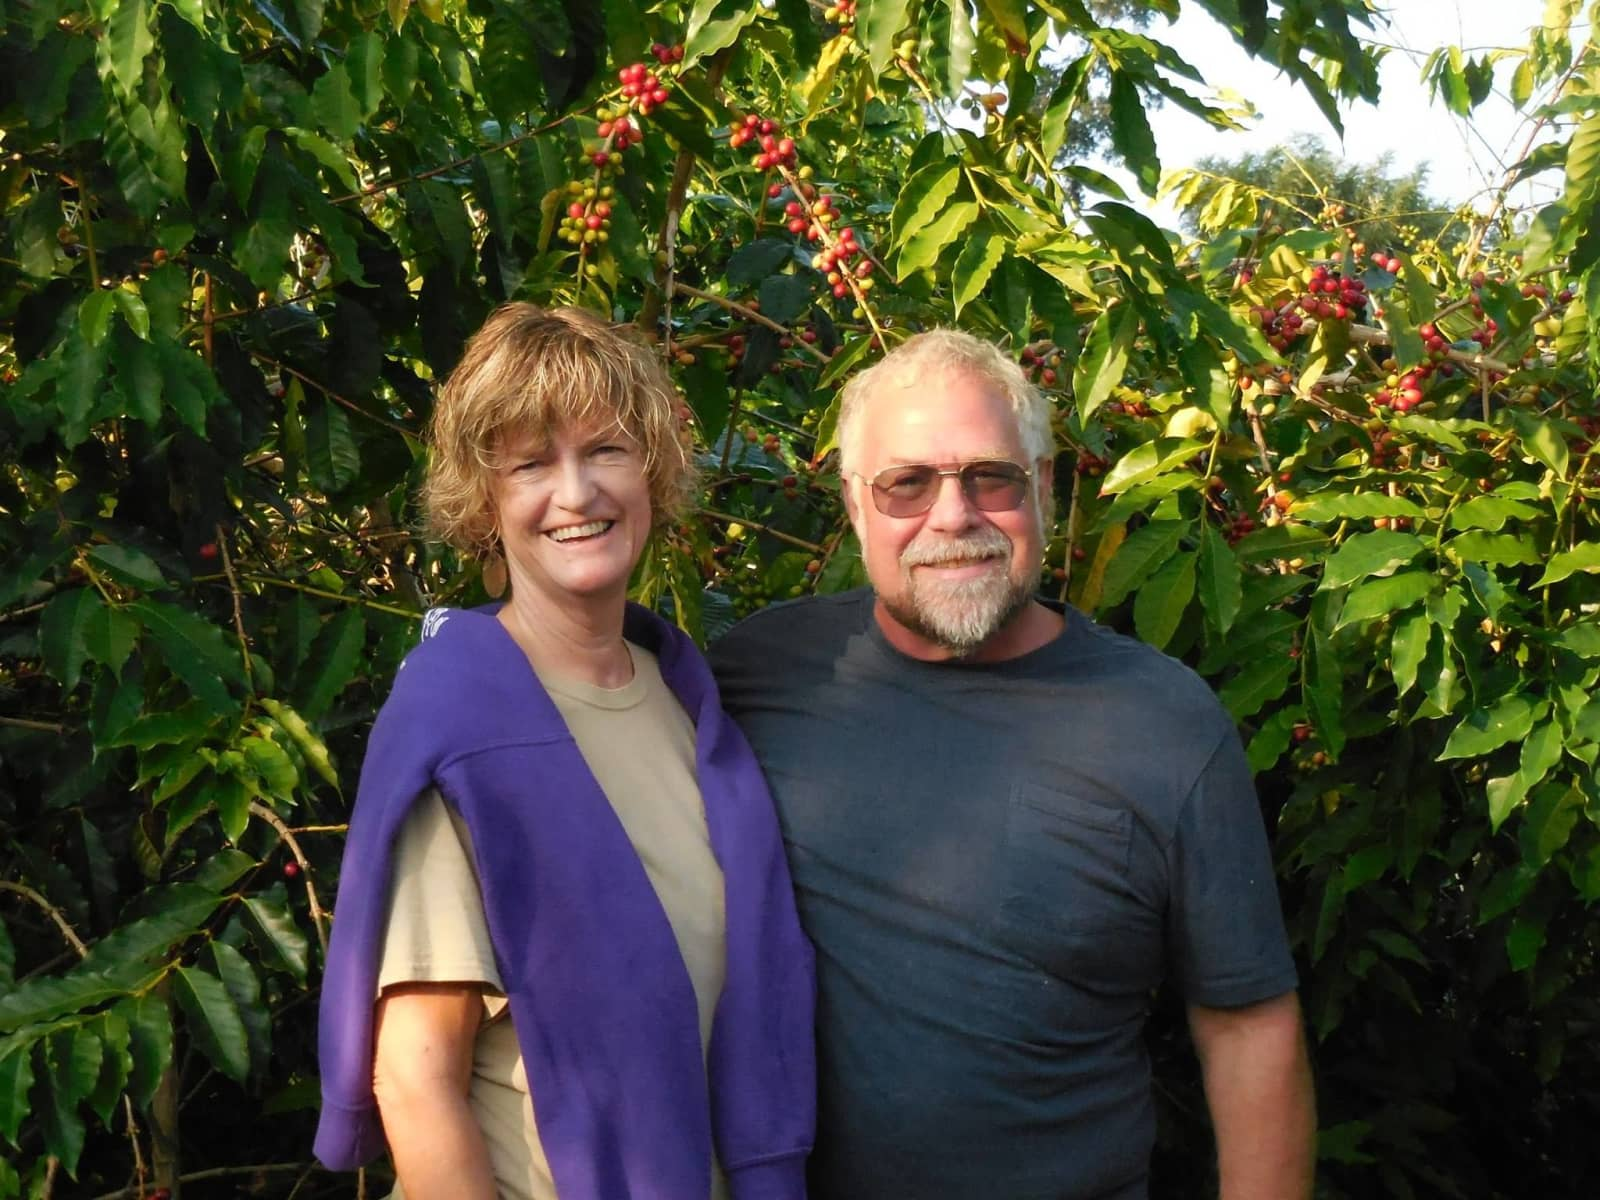 Deborah & William from Seattle, Washington, United States